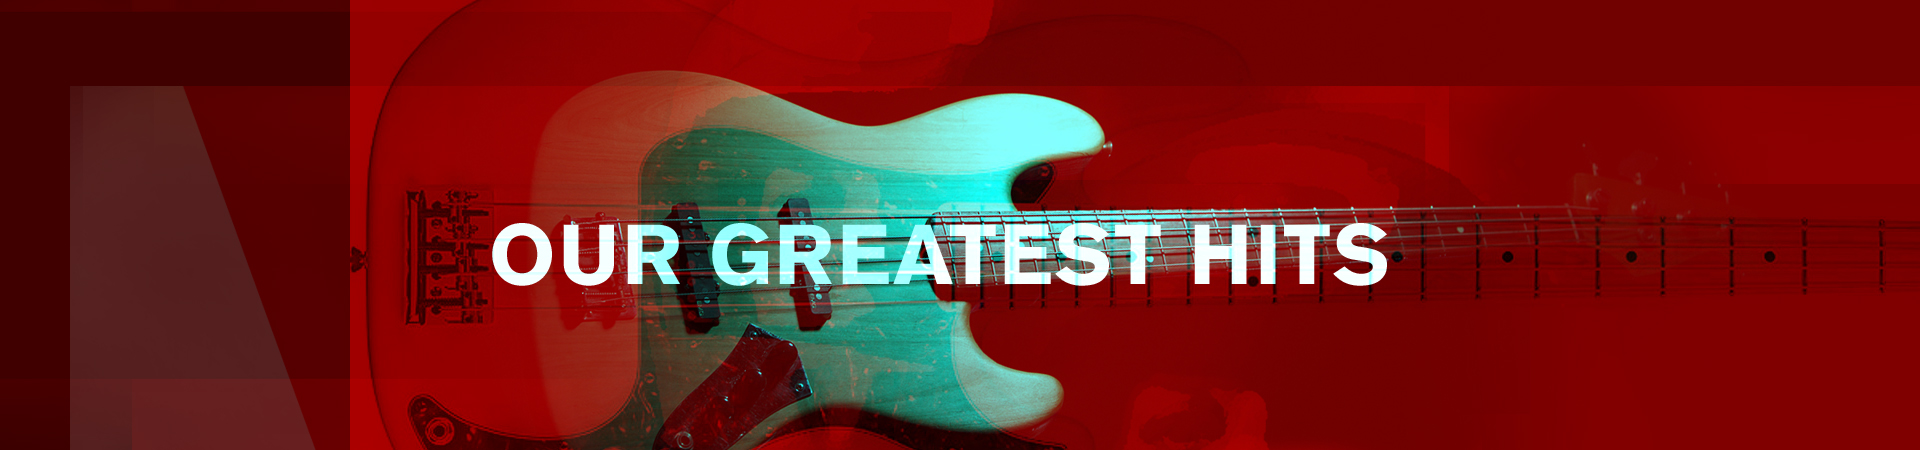 Greatest Hits – Fender red